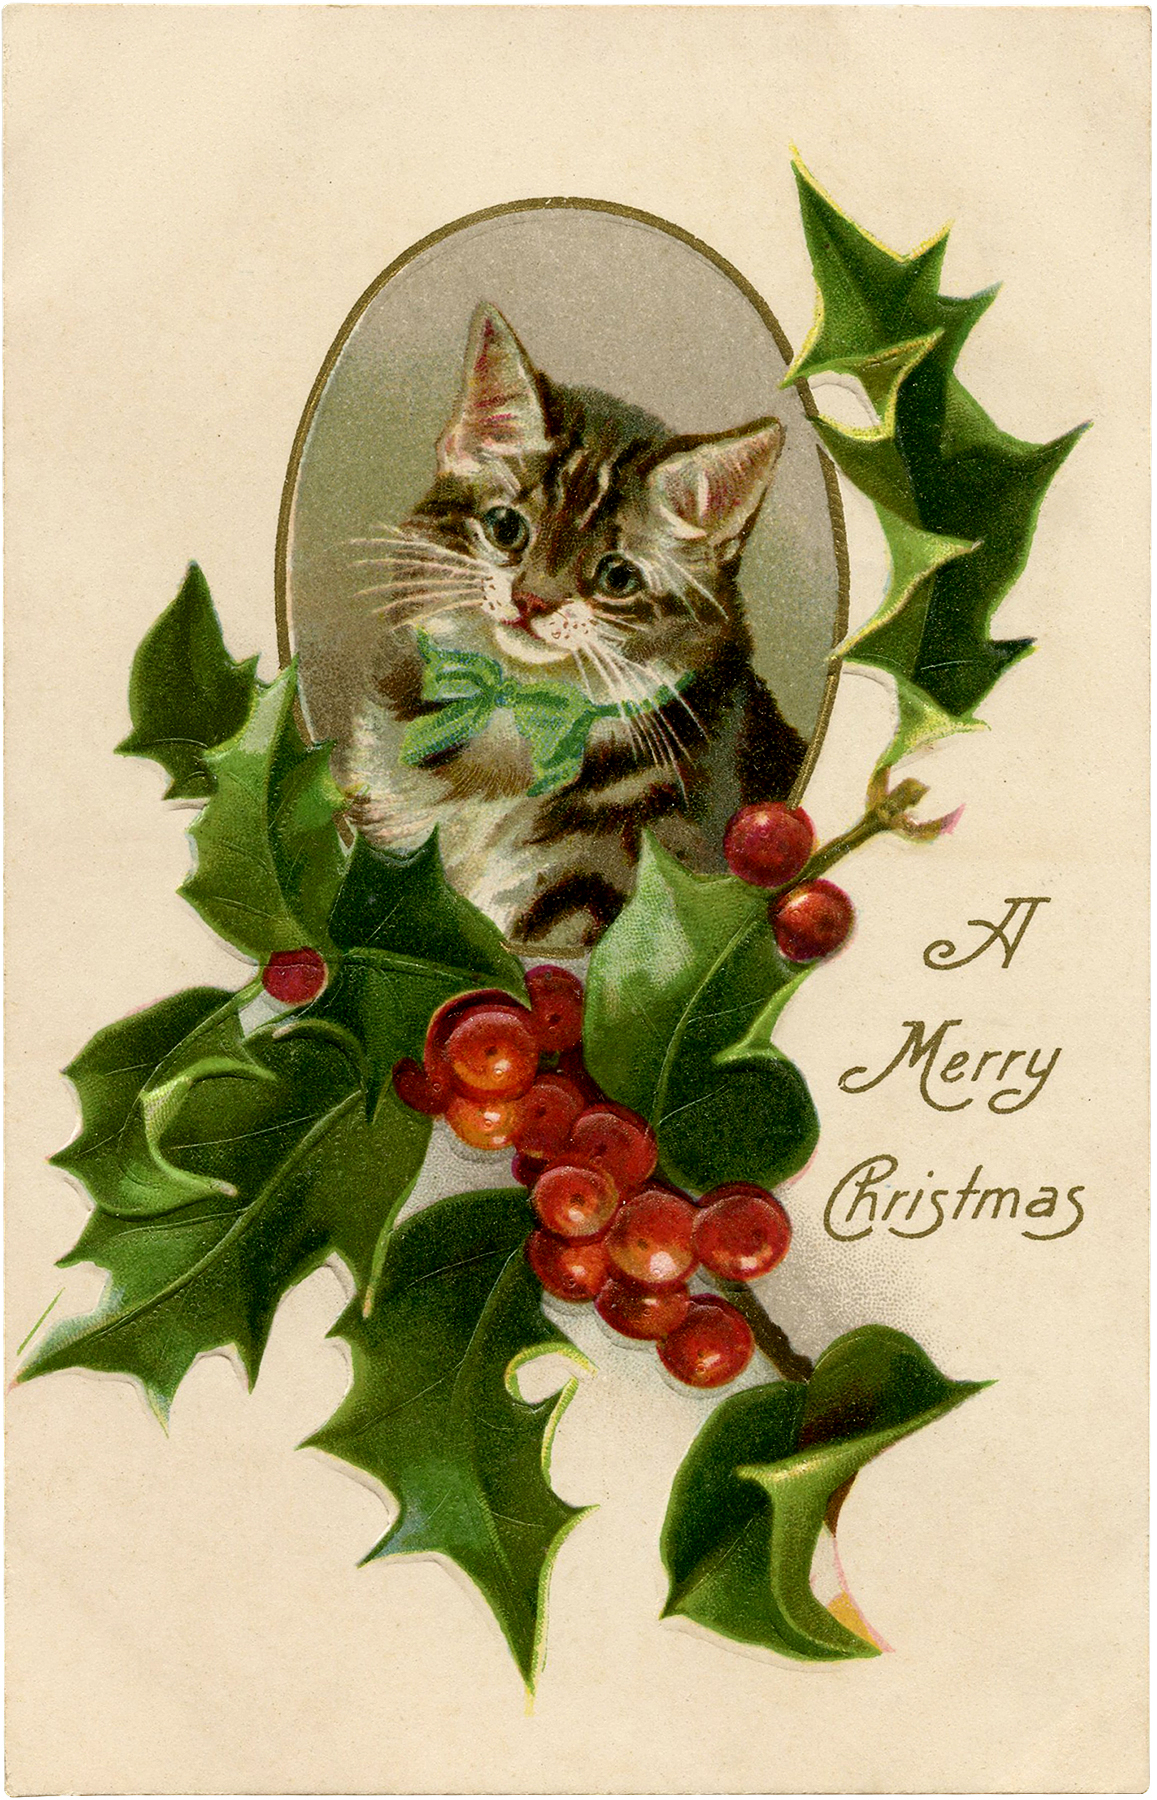 12 Victorian Images For Christmas Crafting Angela Bell